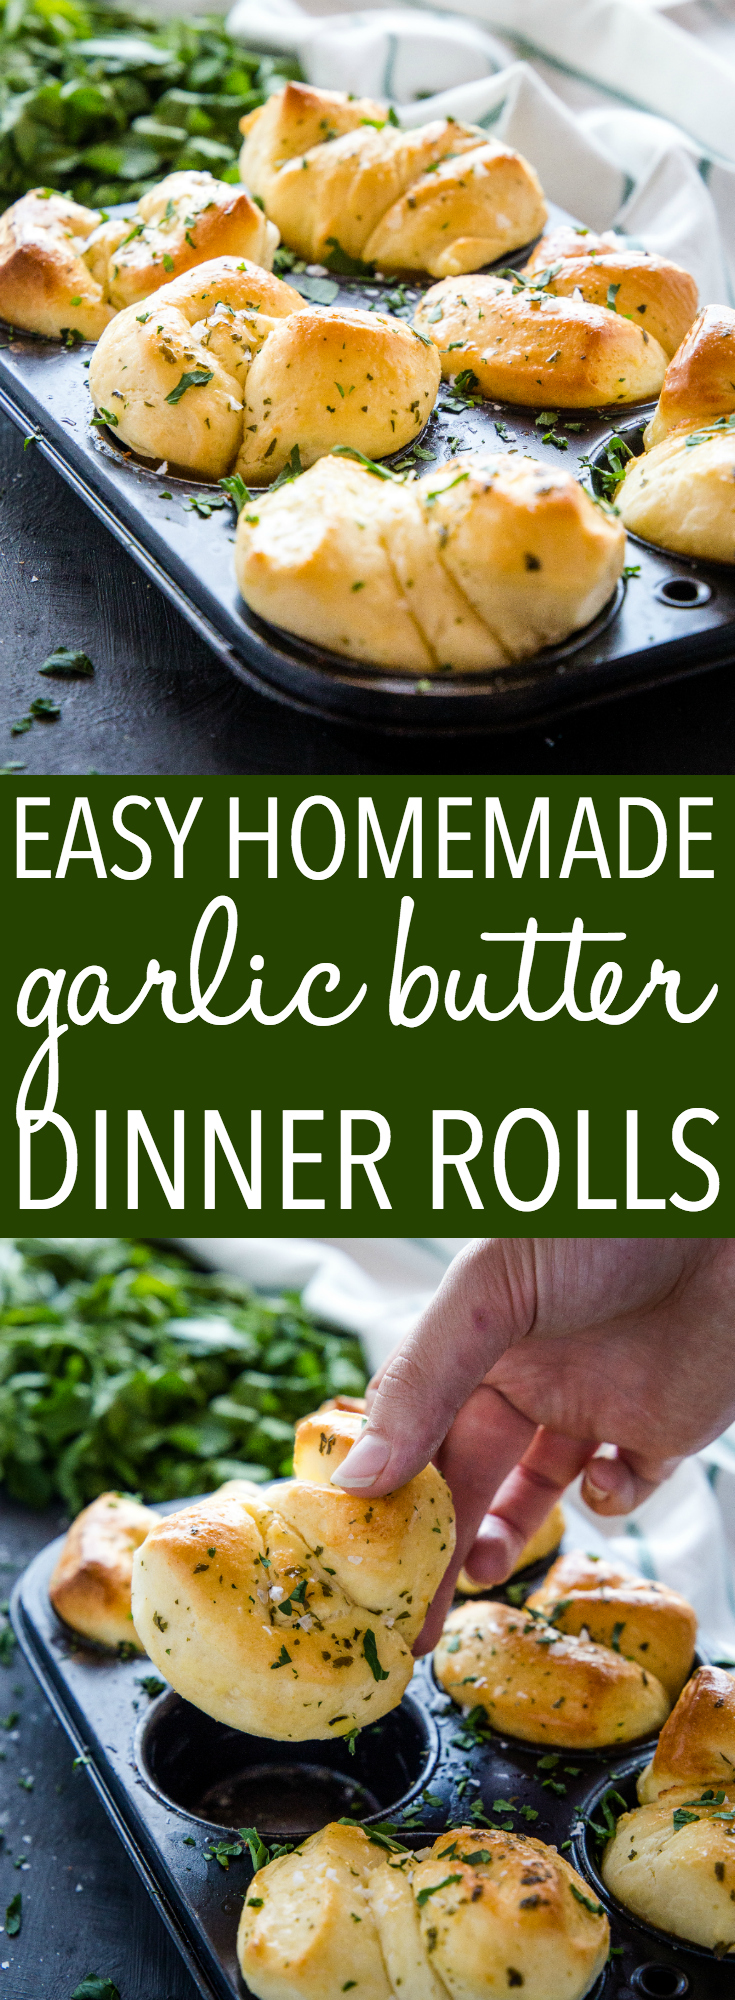 These Easy Homemade Garlic Butter Dinner Rolls are the perfect for your Sunday dinner or holiday table! Made from an simple dough, garlic butter and sea salt! Recipe from thebusybaker.ca! #dinnerrolls #thanksgiving #holiday #christmas #dinner #homemade #fromscratch #comfortfood #buns #garlic #butter #seasalt #garlicrolls #garlicknots via @busybakerblog